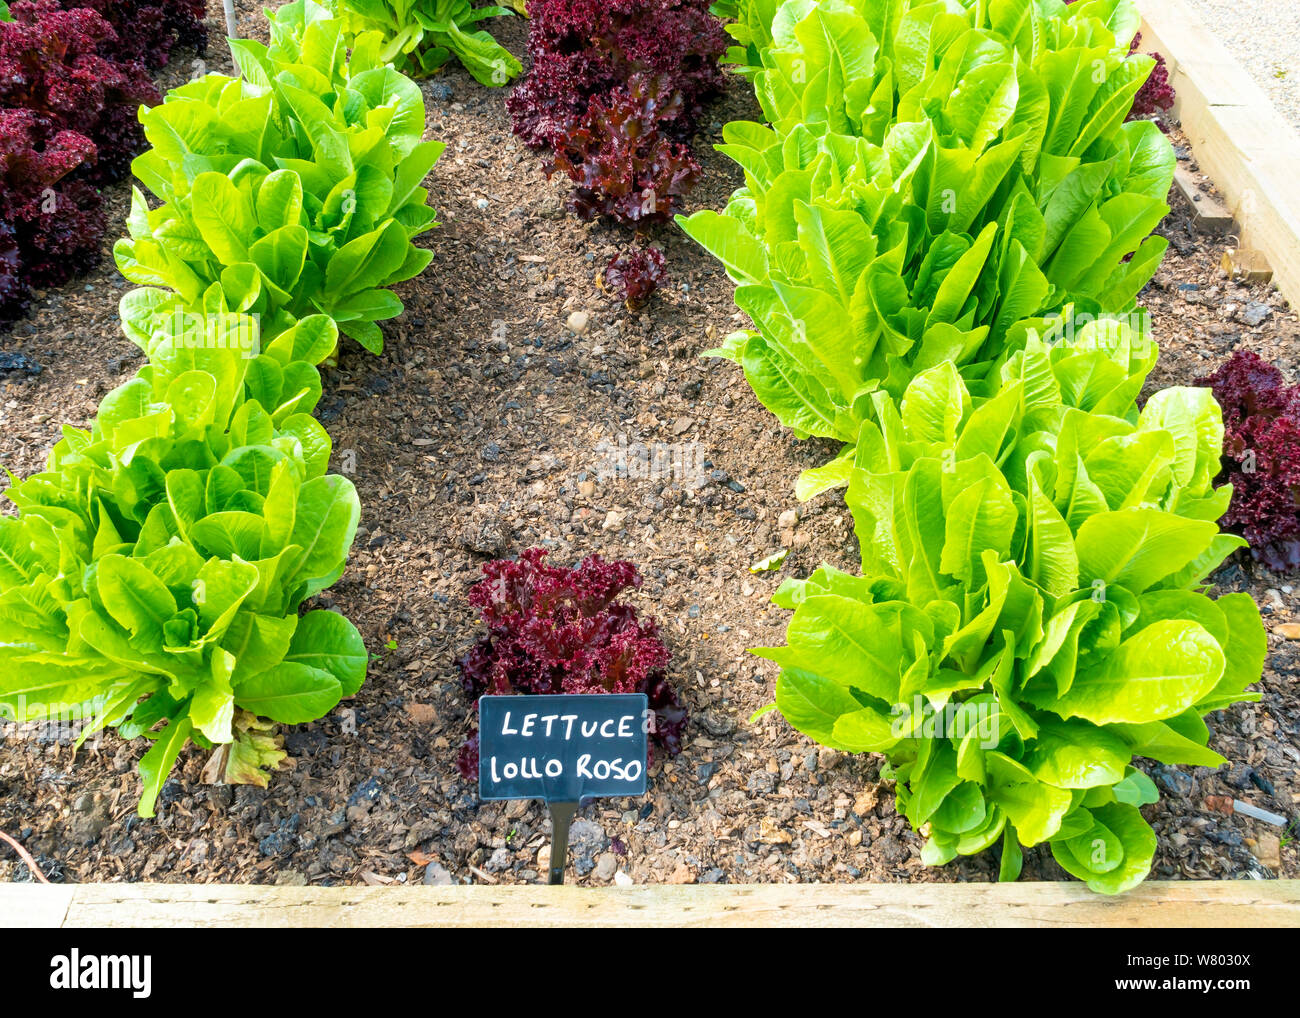 Lettuce Lollo Rosso Growing In The Edible Garden At The Walled